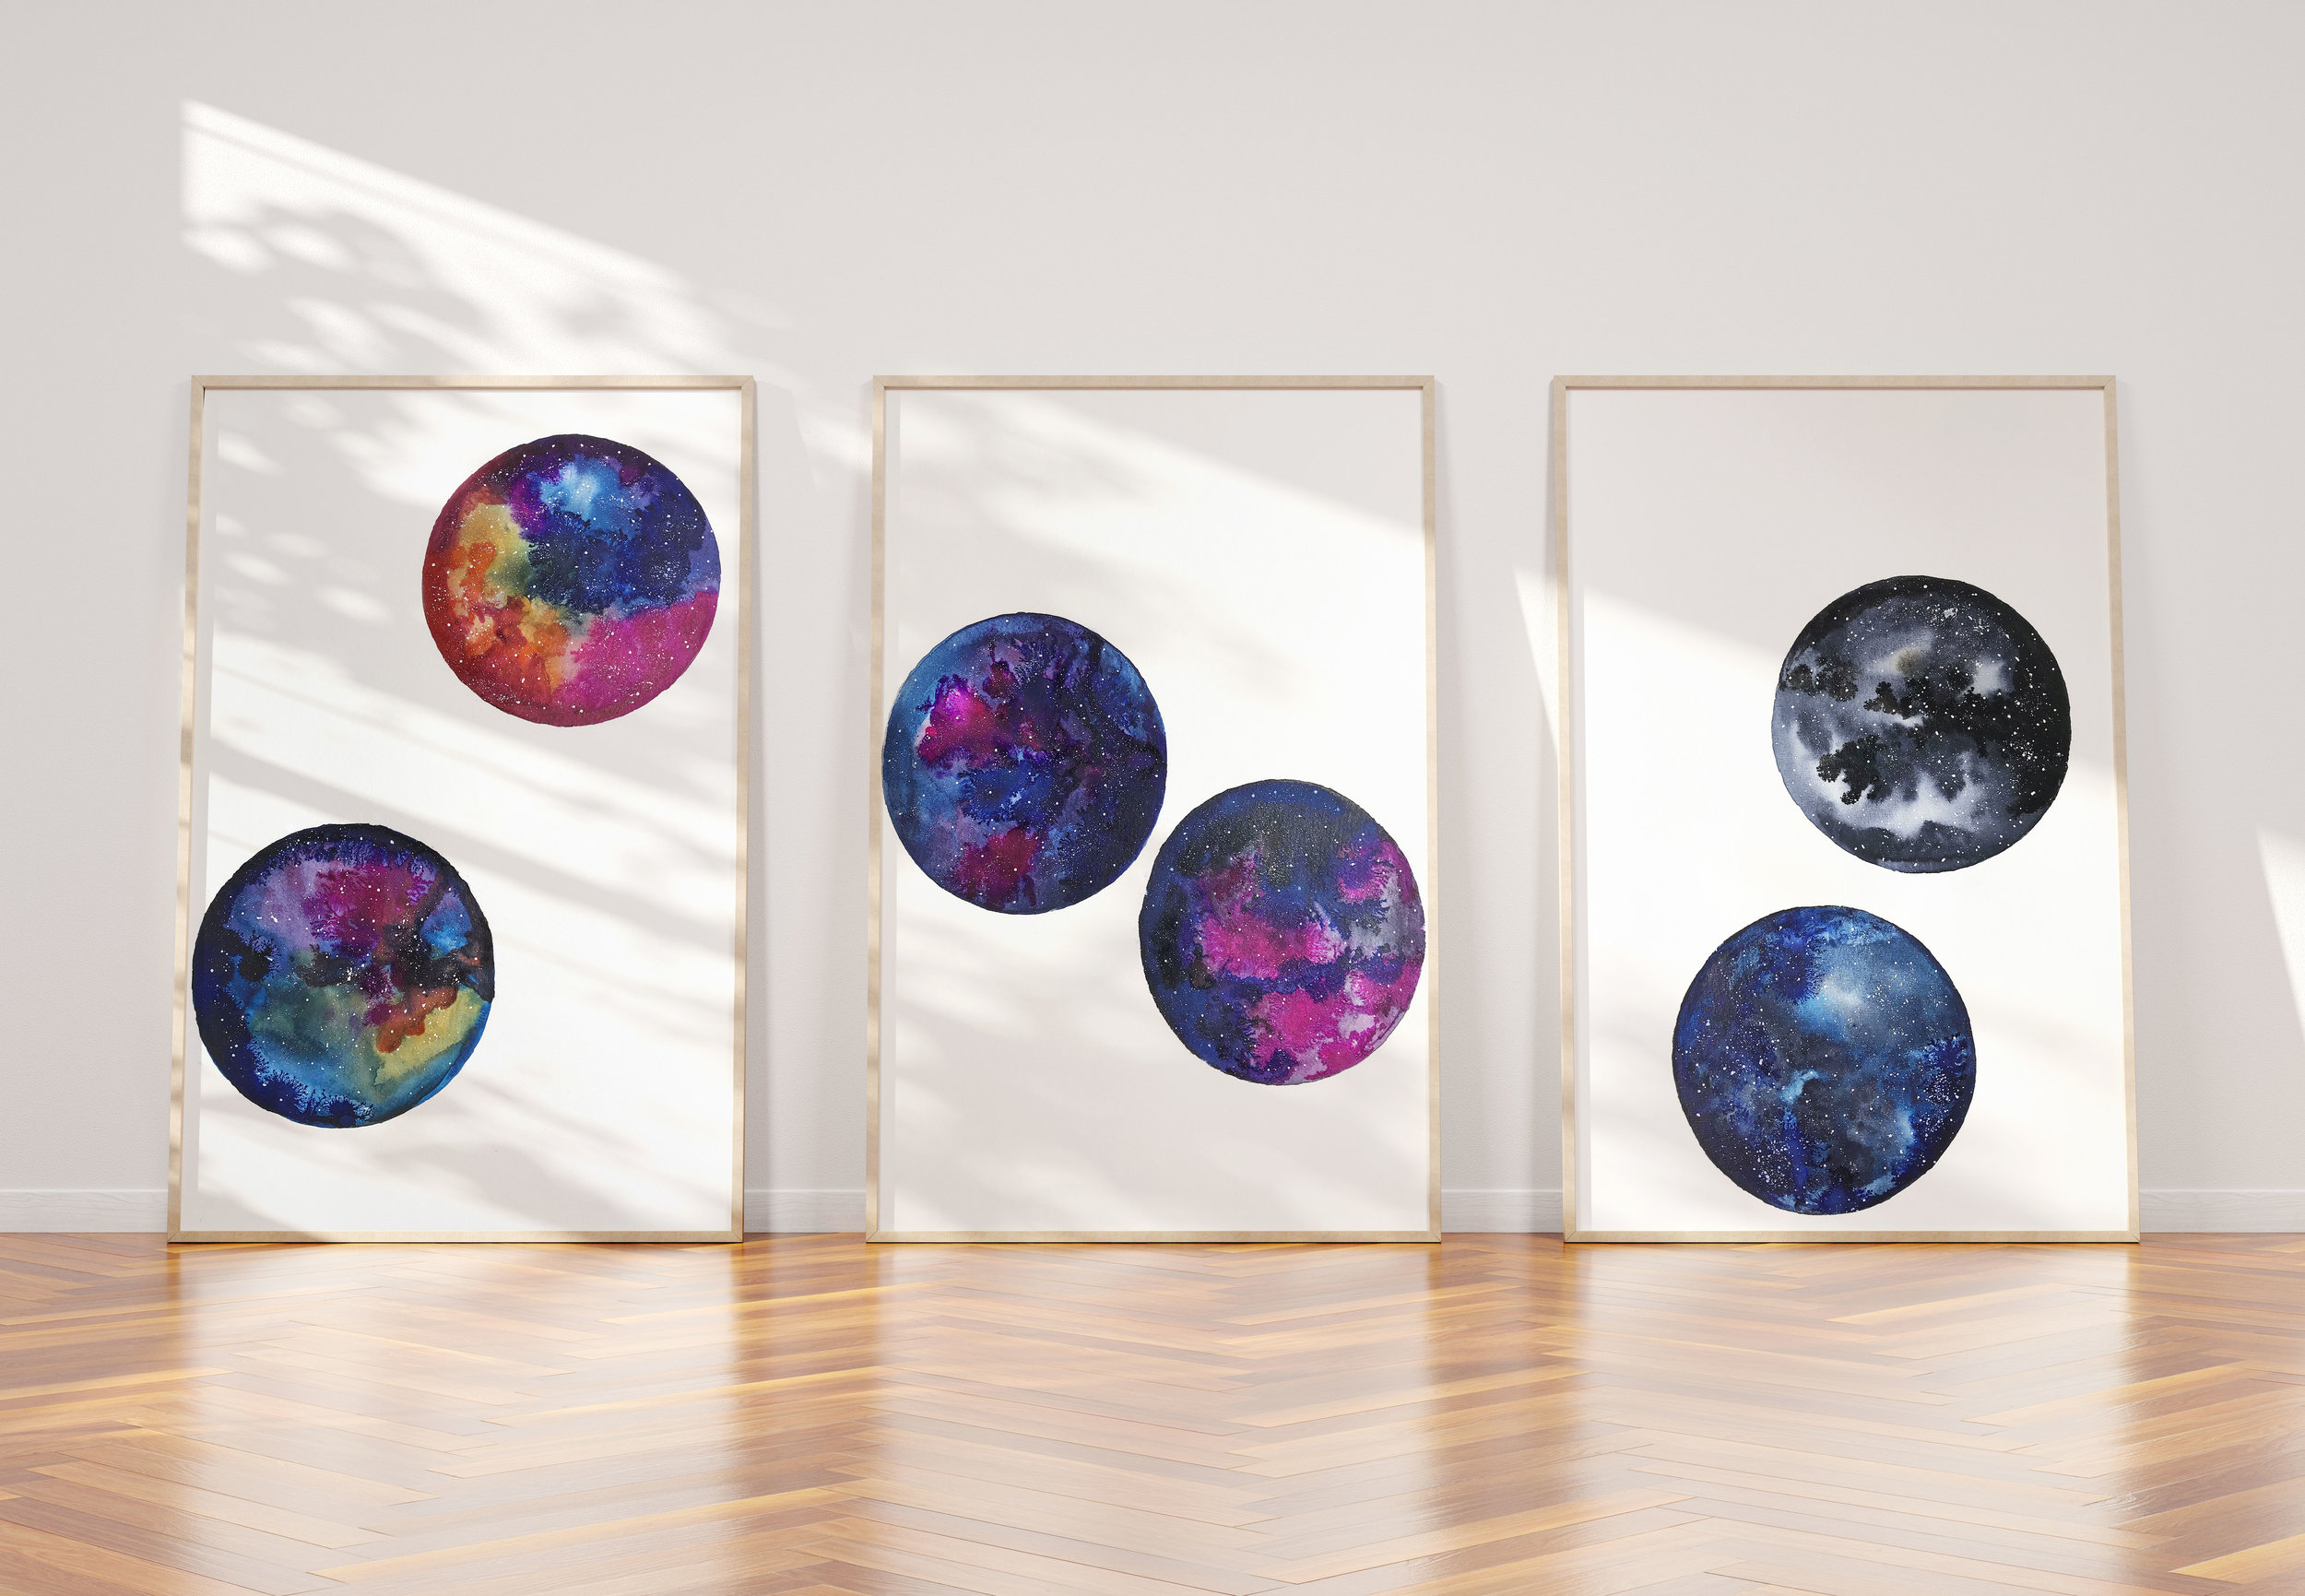 Astrological constellations - Immerse yourself in the complex and rich universe of each astro sign!